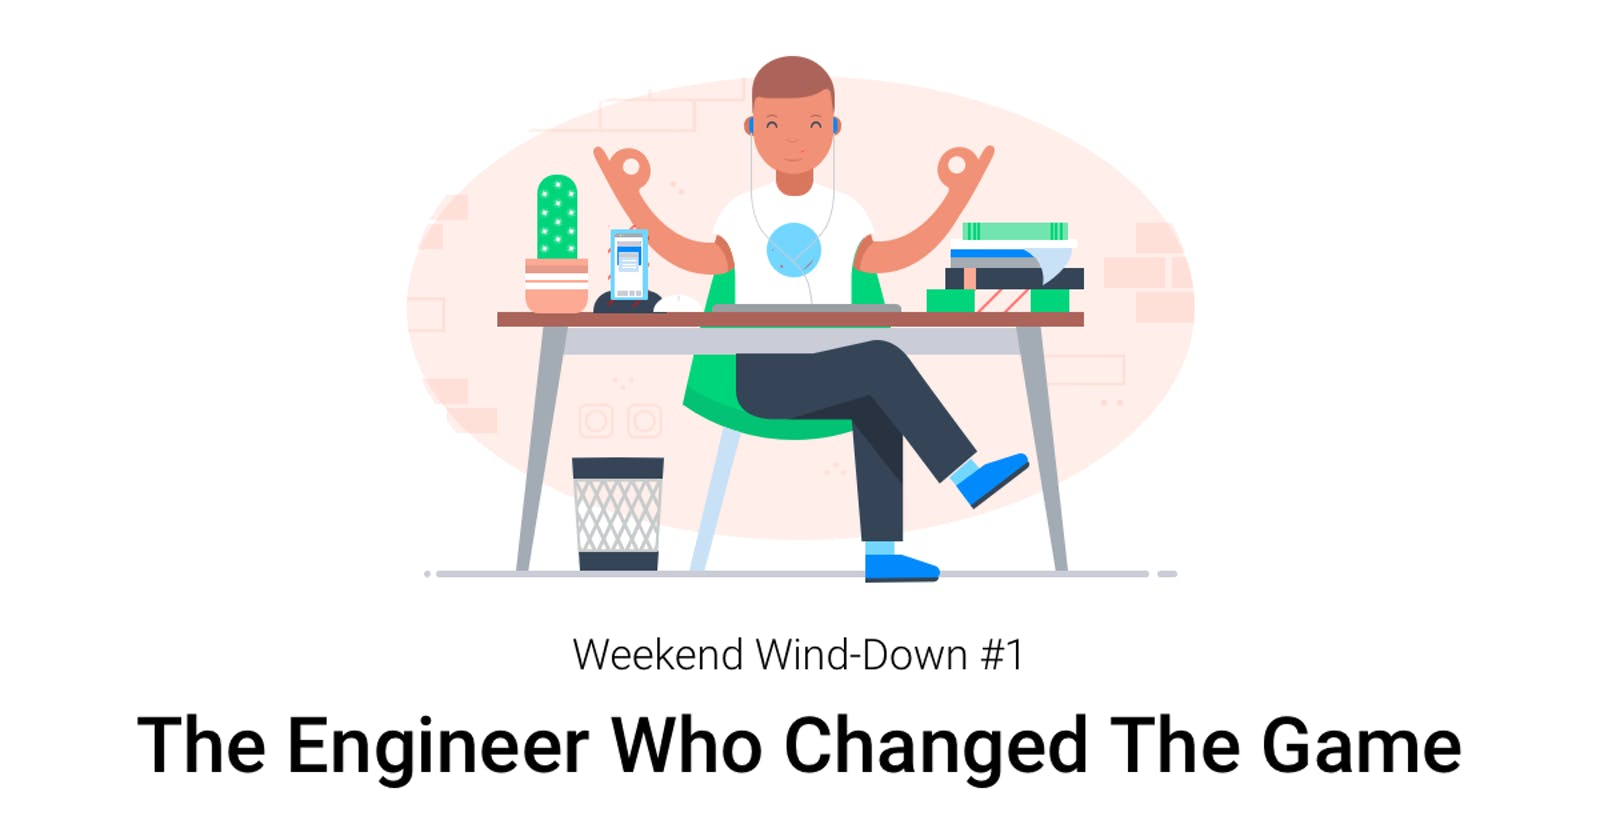 Weekend Wind-Down #1 - The Engineer Who Changed The Game